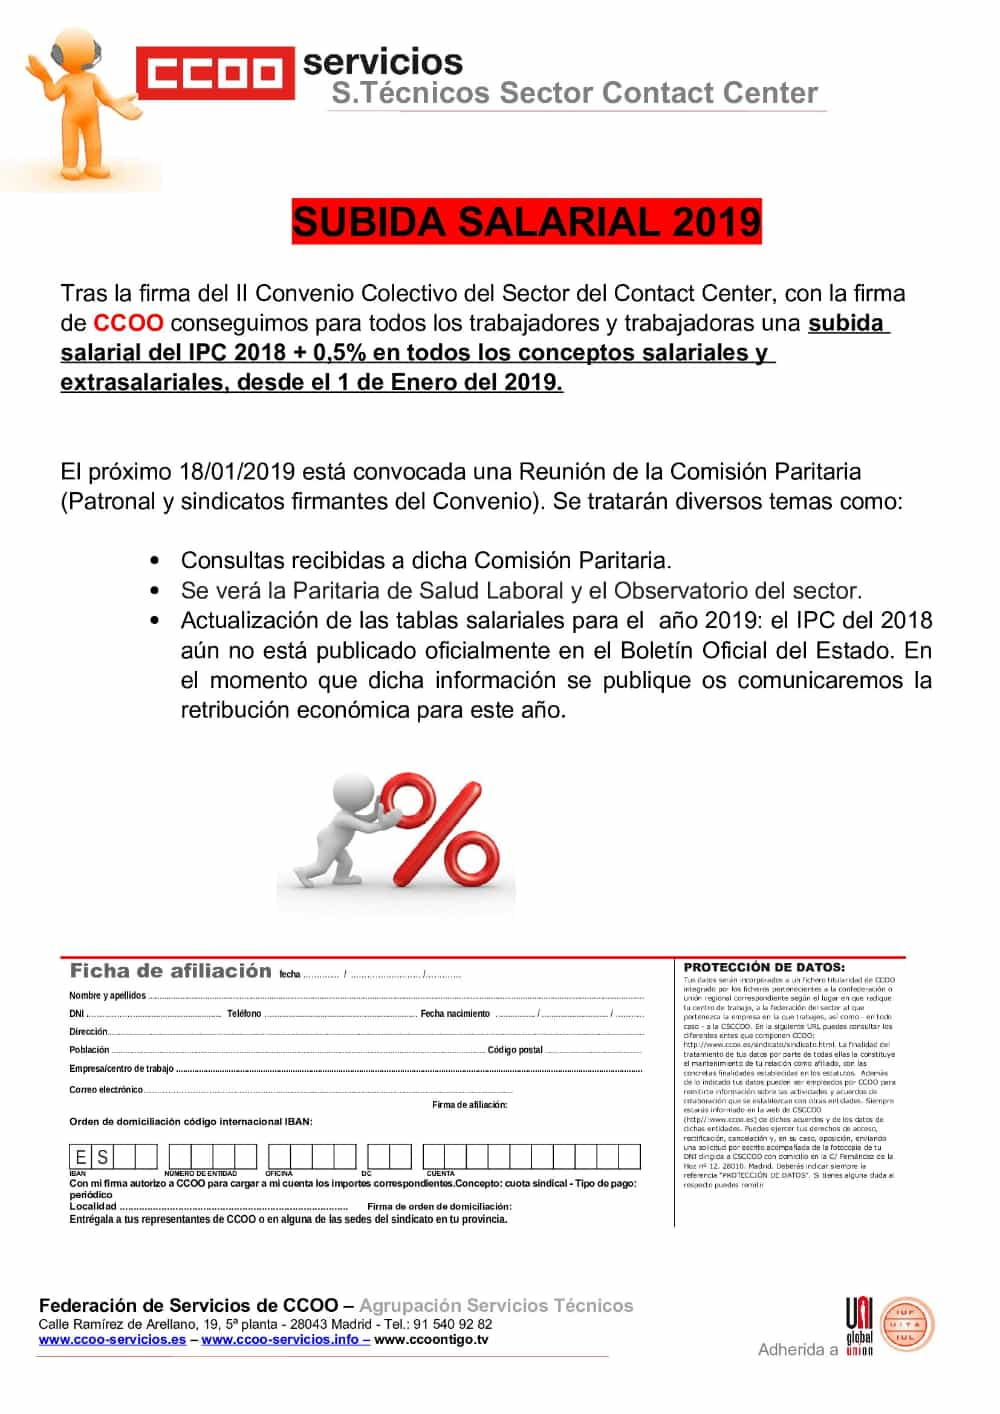 Subida Salarial Telemarketing 2019